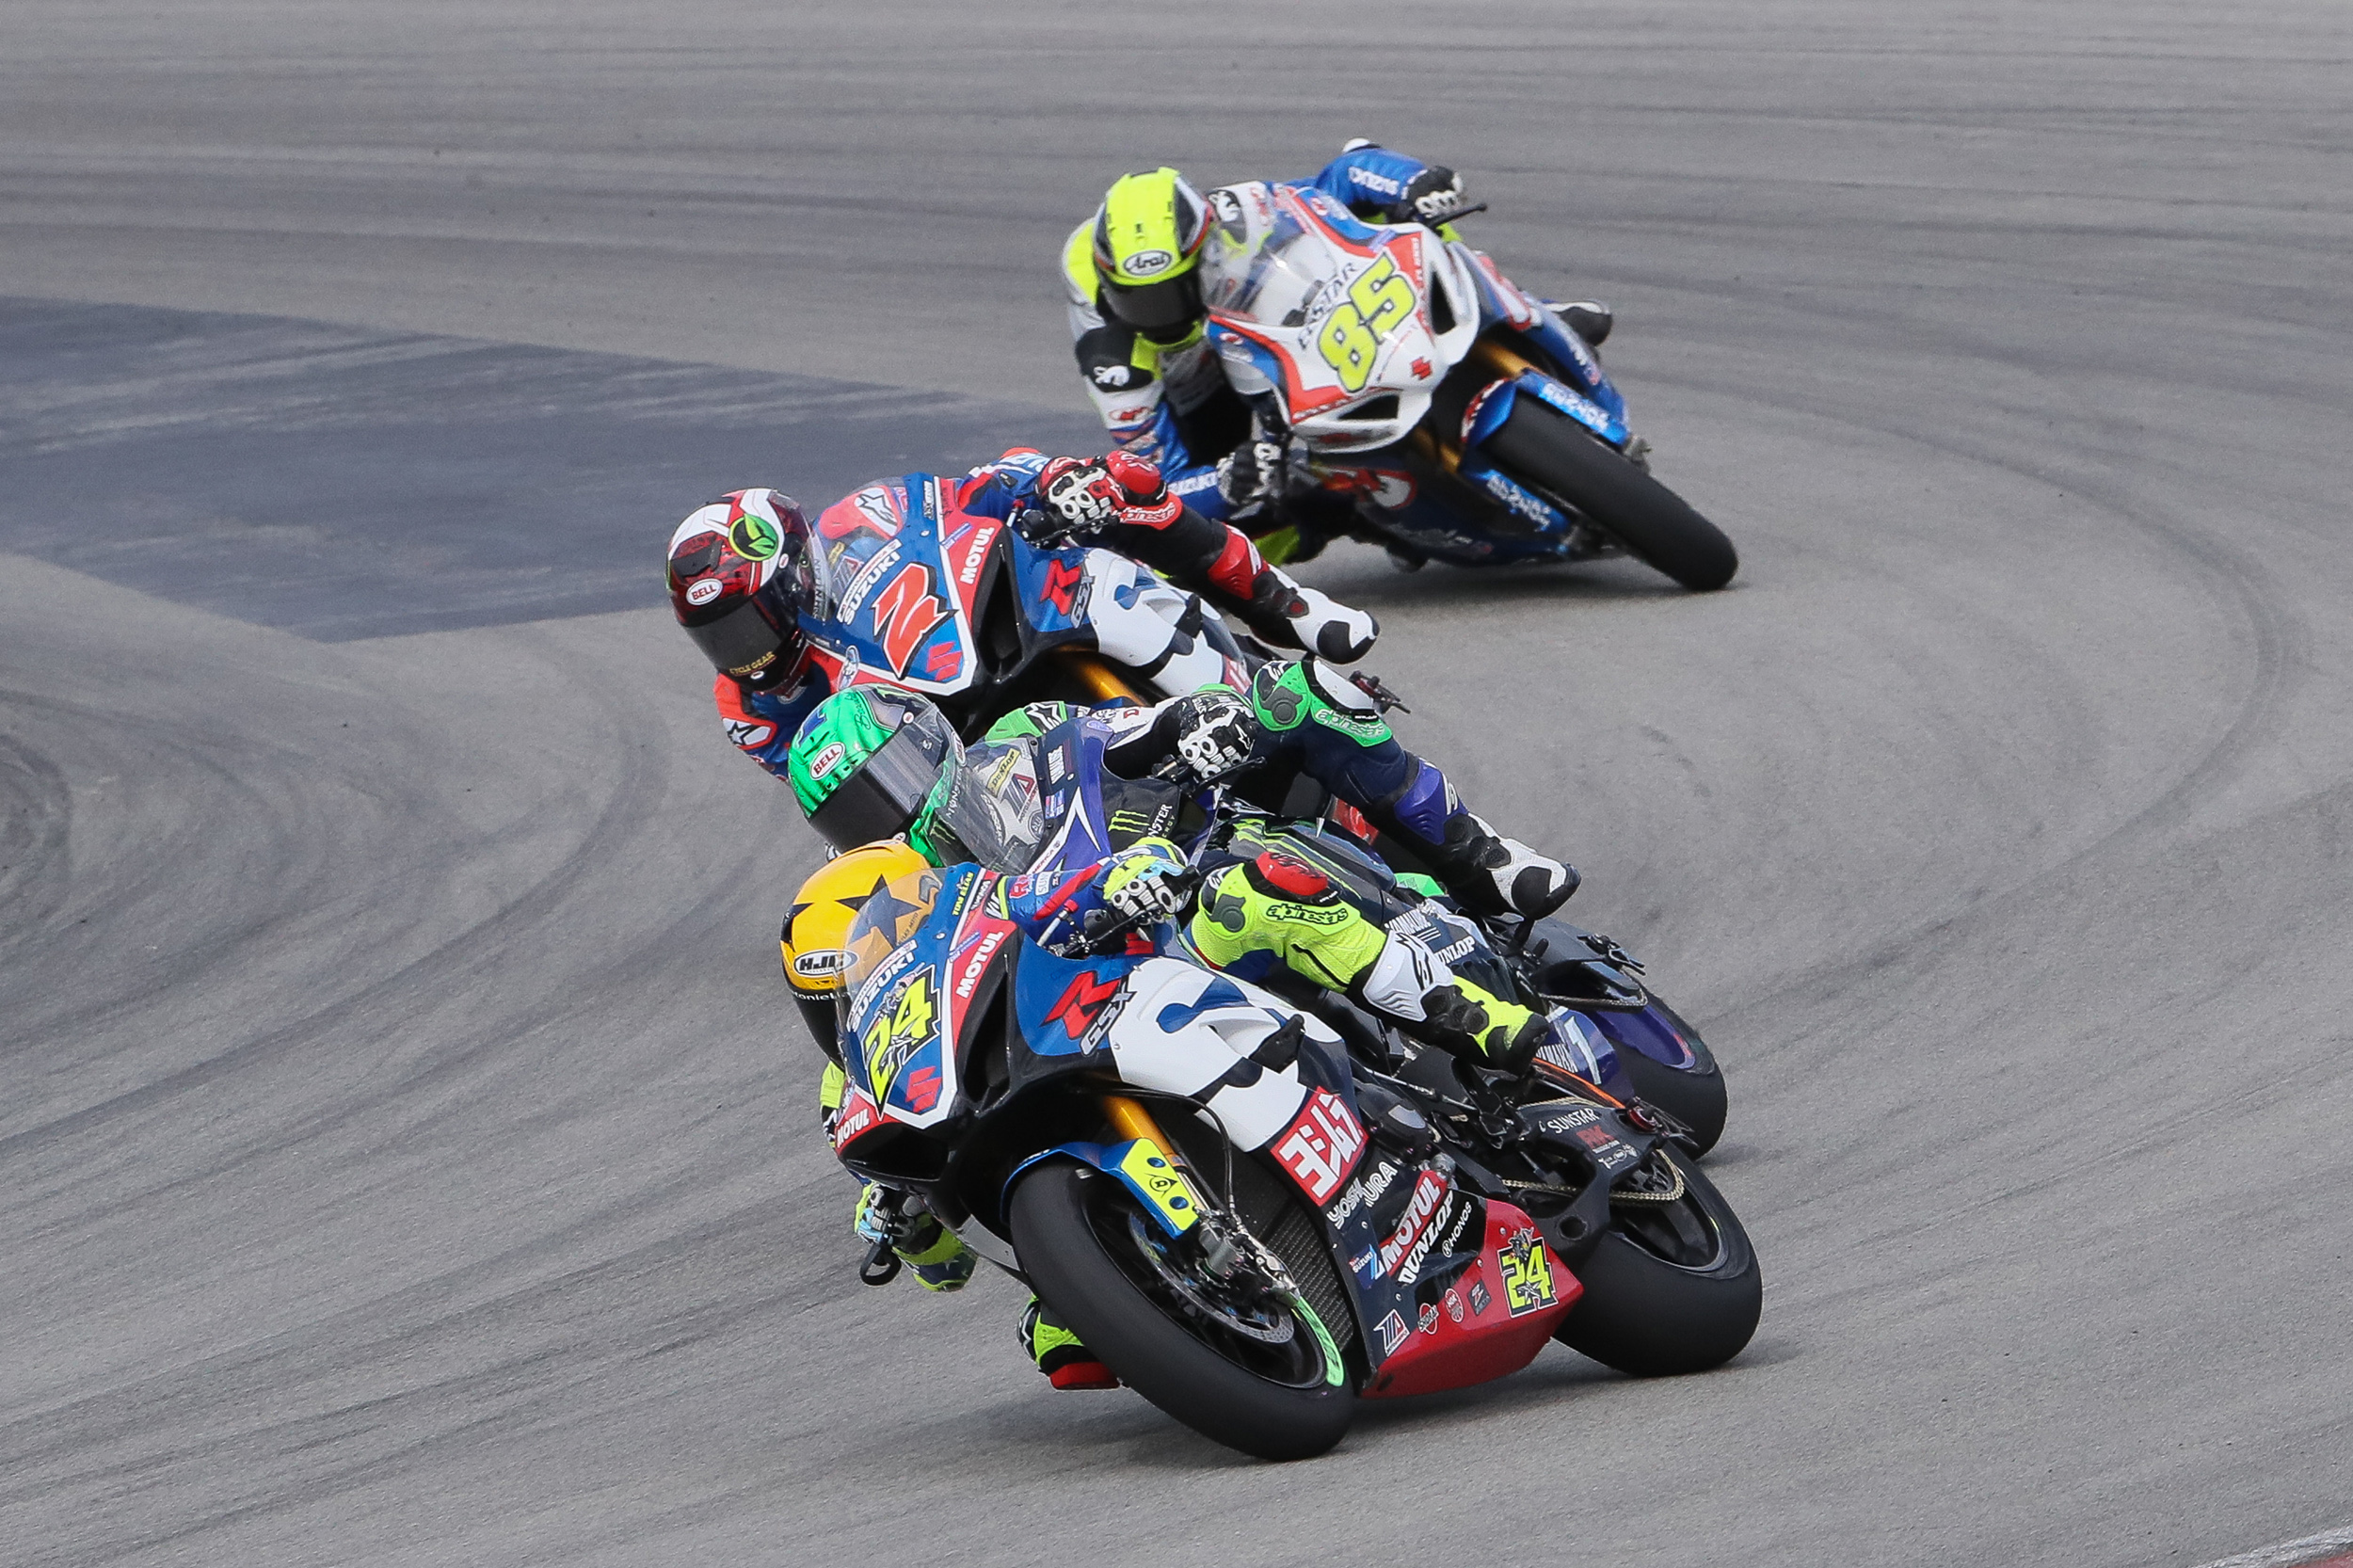 Toni Elias (#24) led the pack on Sunday with teammate Josh Herrin (#2) not too far behind